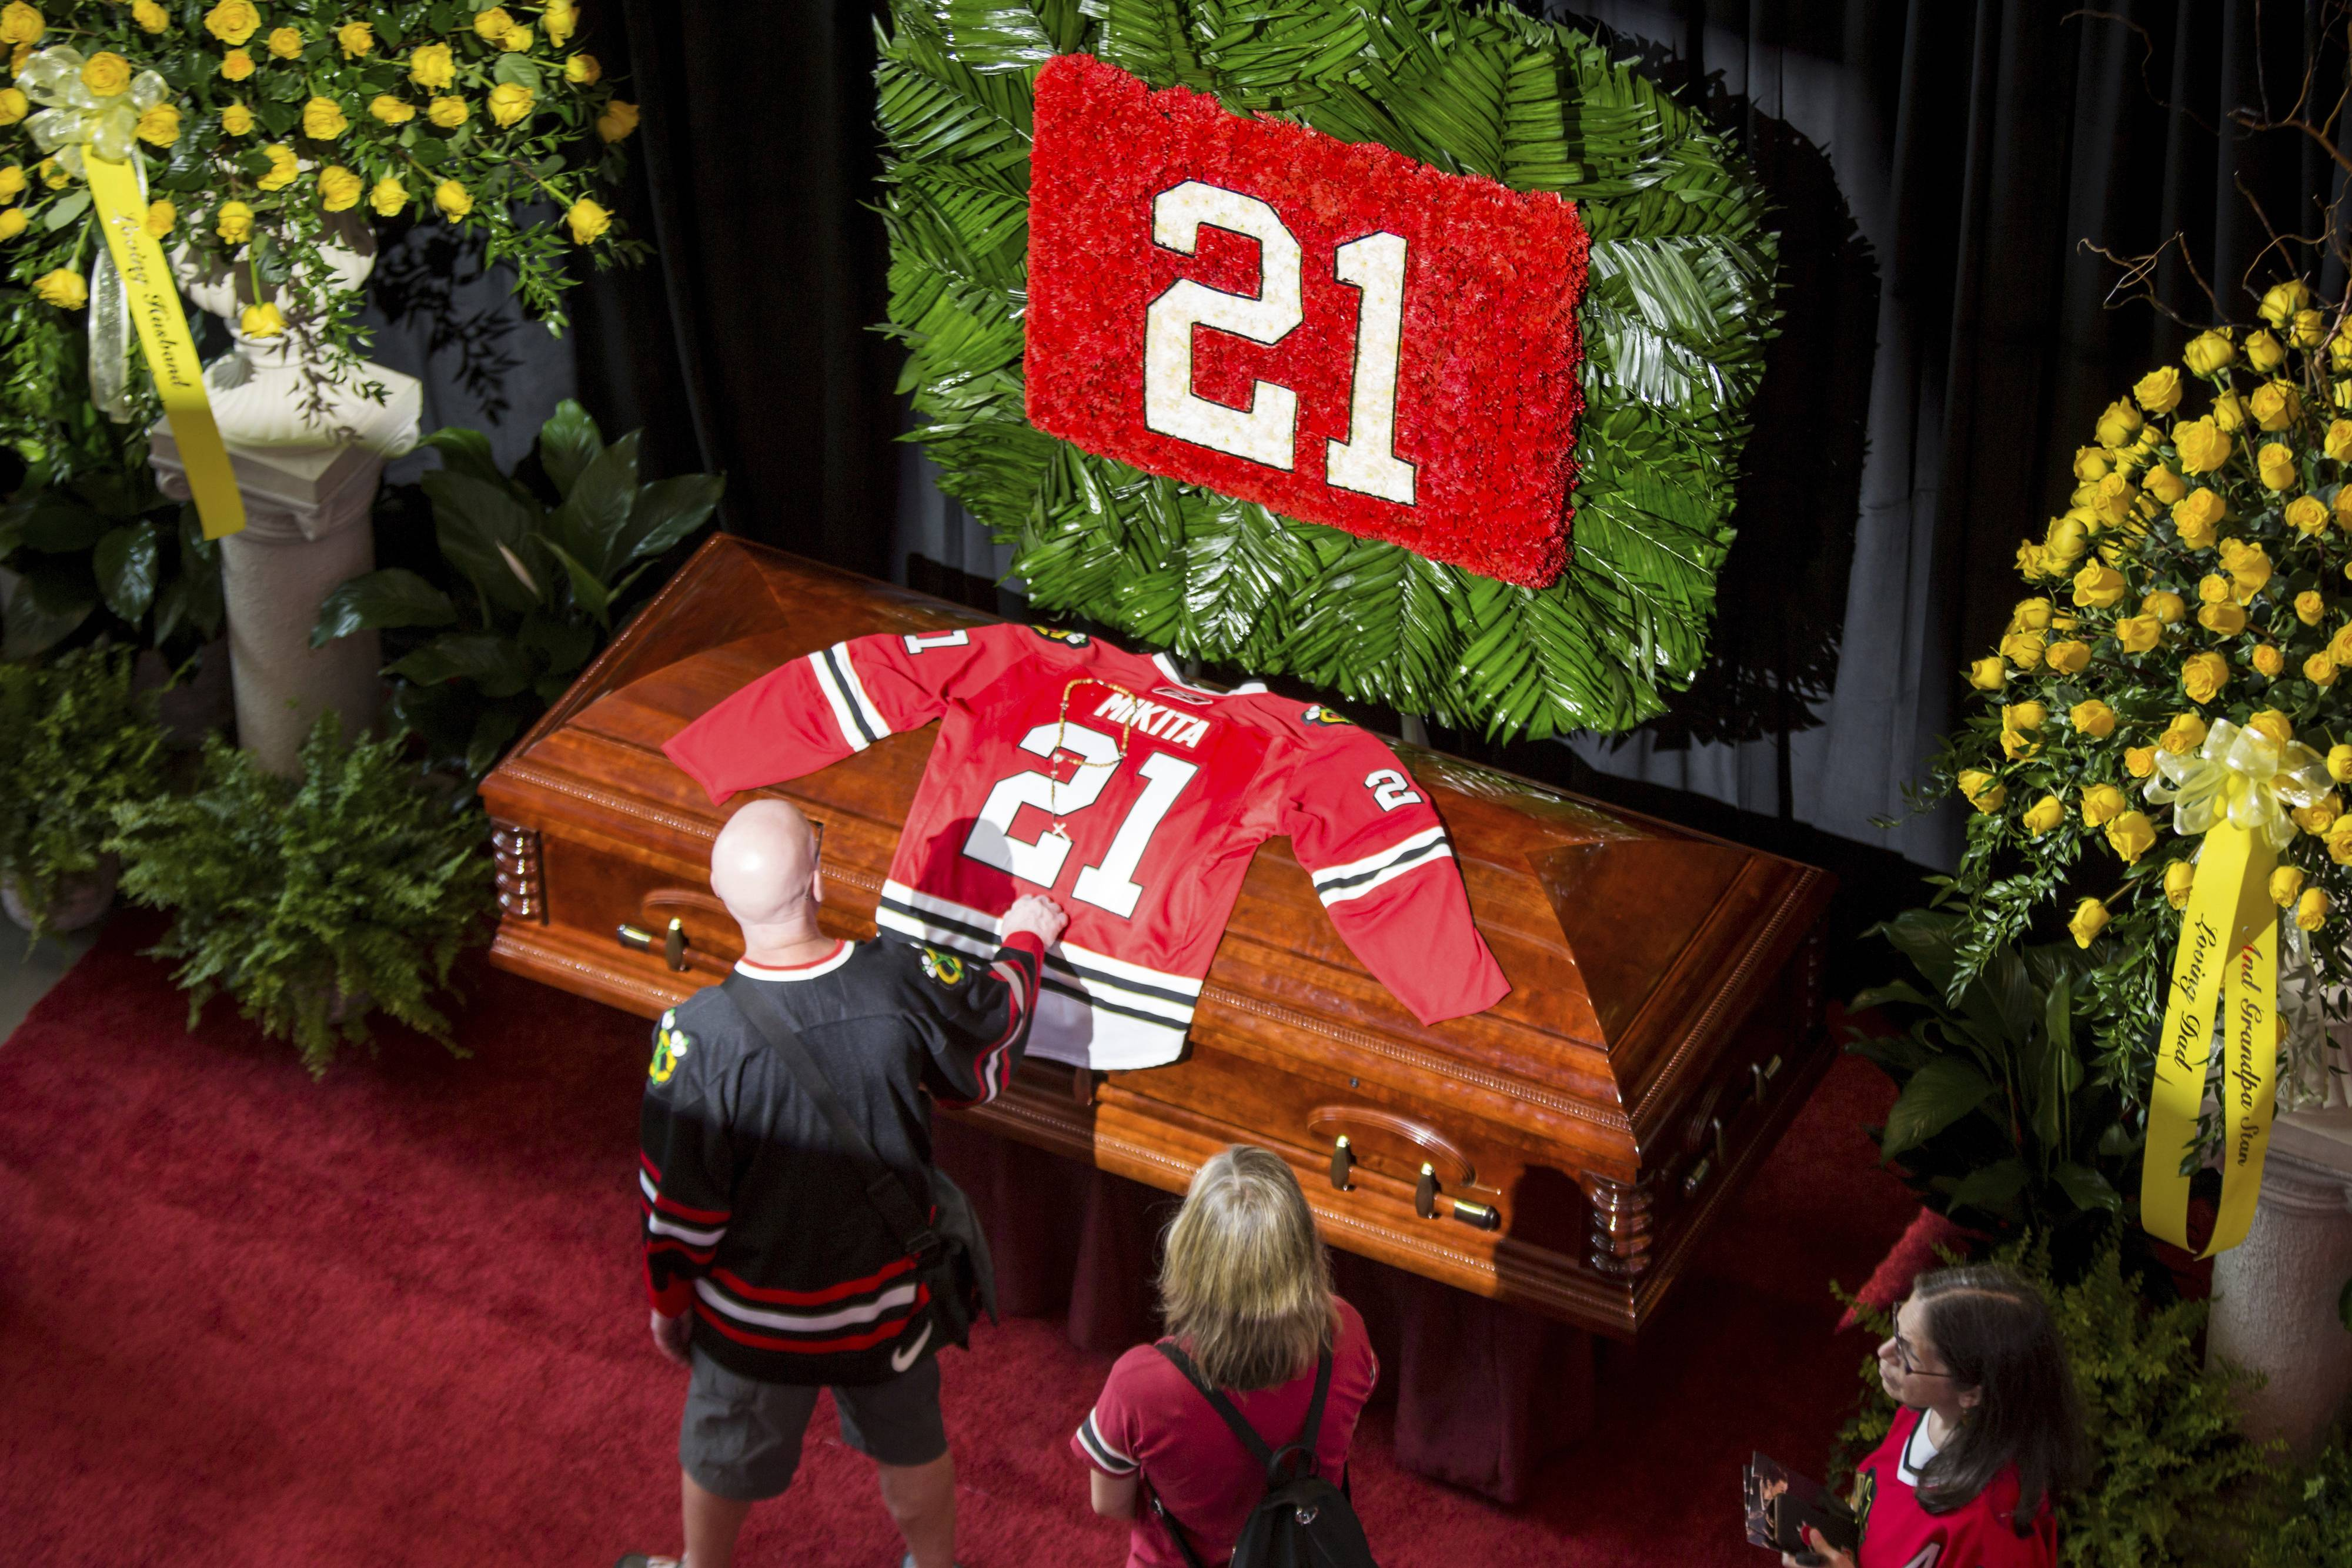 Fans pay their last respects at a memorial service for Chicago Blackhawk Stan Mikita at the United Center, Sunday, Aug. 12, 2018. Mikita, who helped lead the Blackhawks to the 1961 Stanley Cup title while becoming one of the franchise's most revered figures, died Tuesday. He was 78.